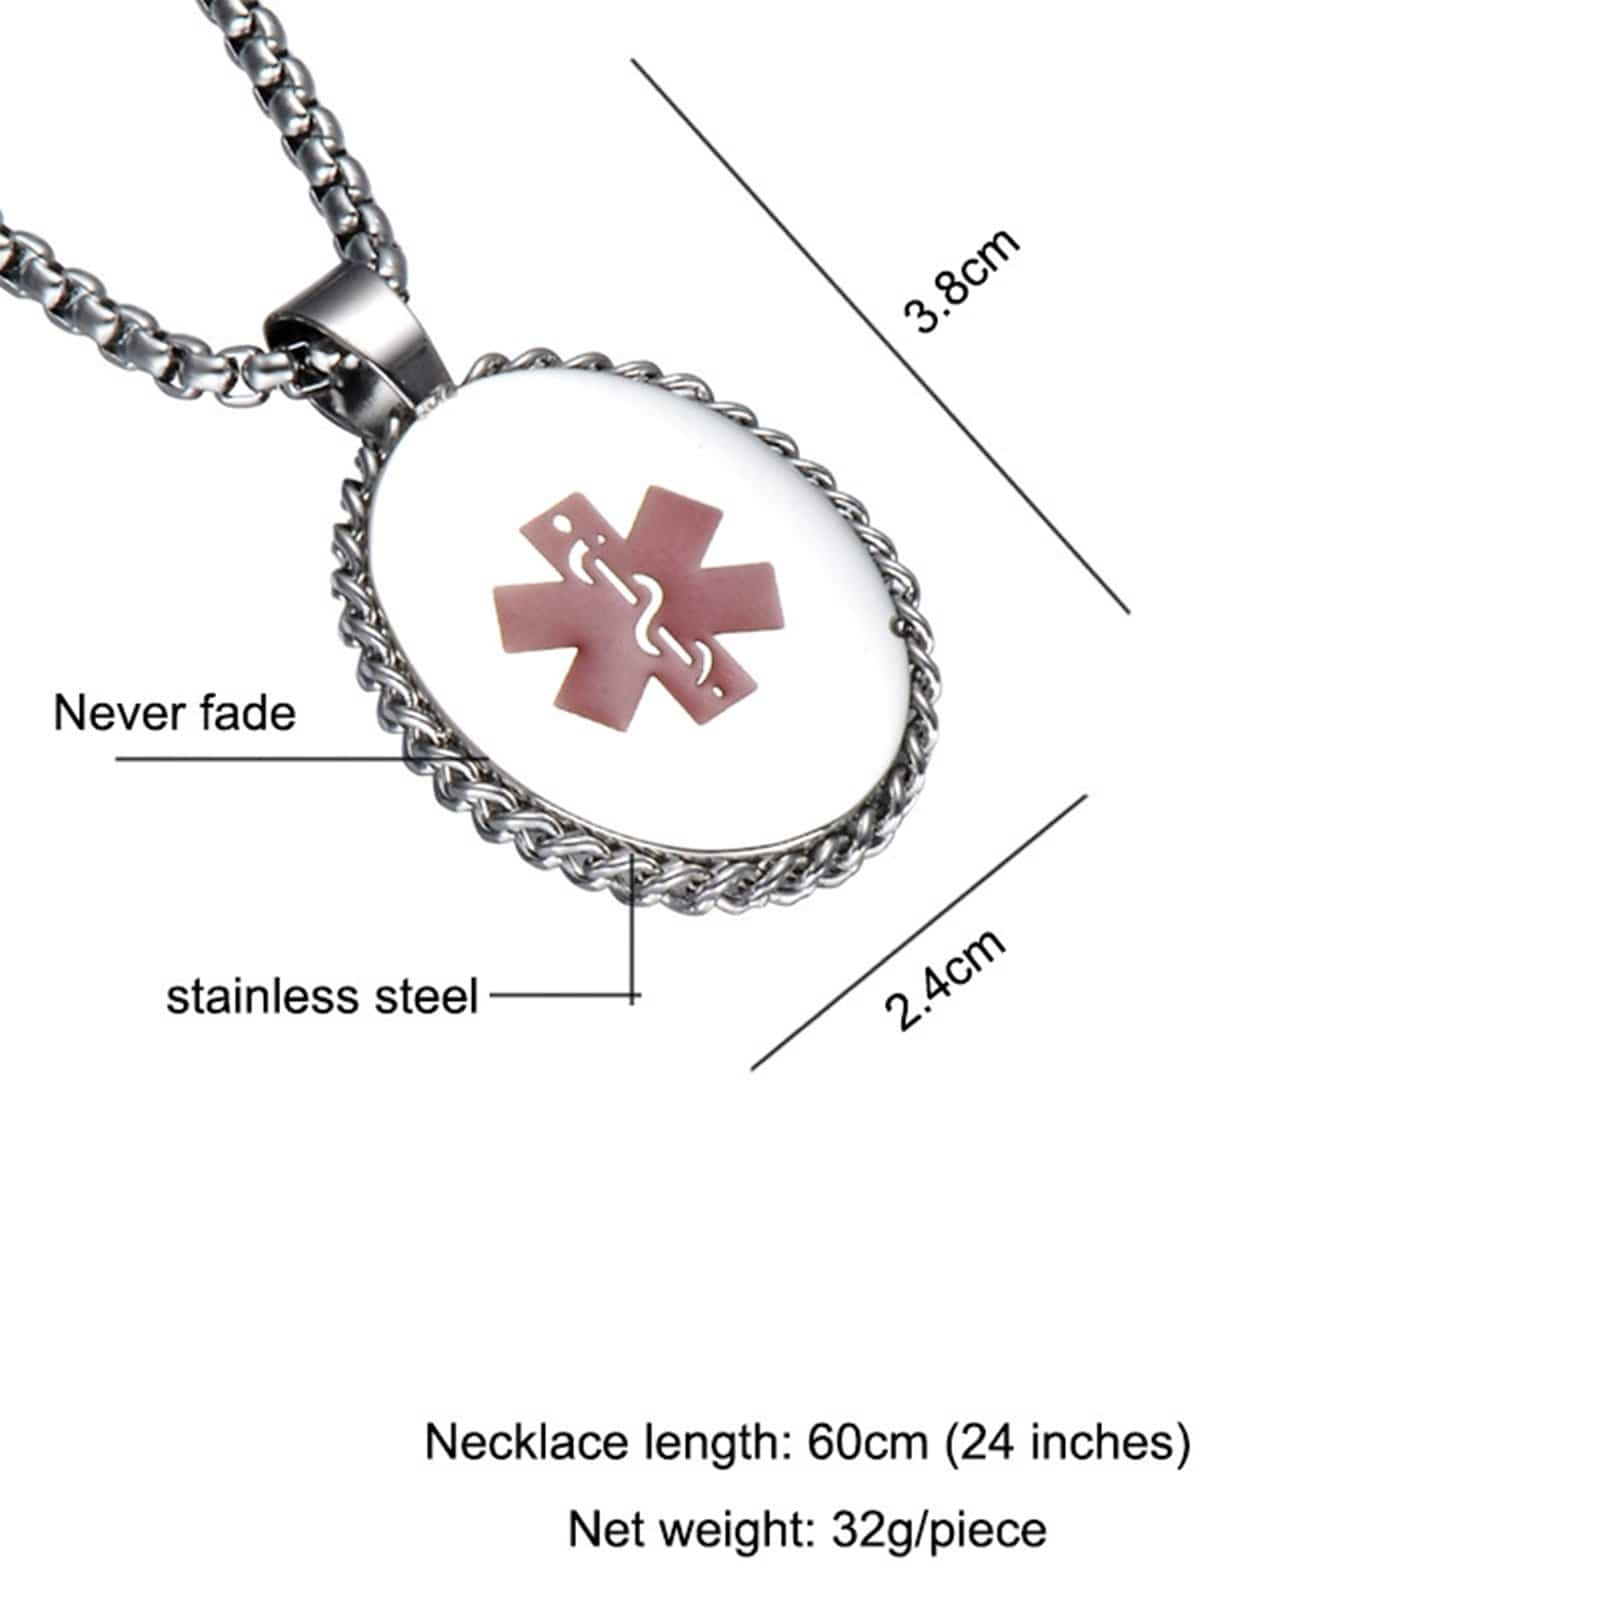 Medical Necklace Women Stainless Steel Necklace Pendant Chain Oval Pendant Medical Signs